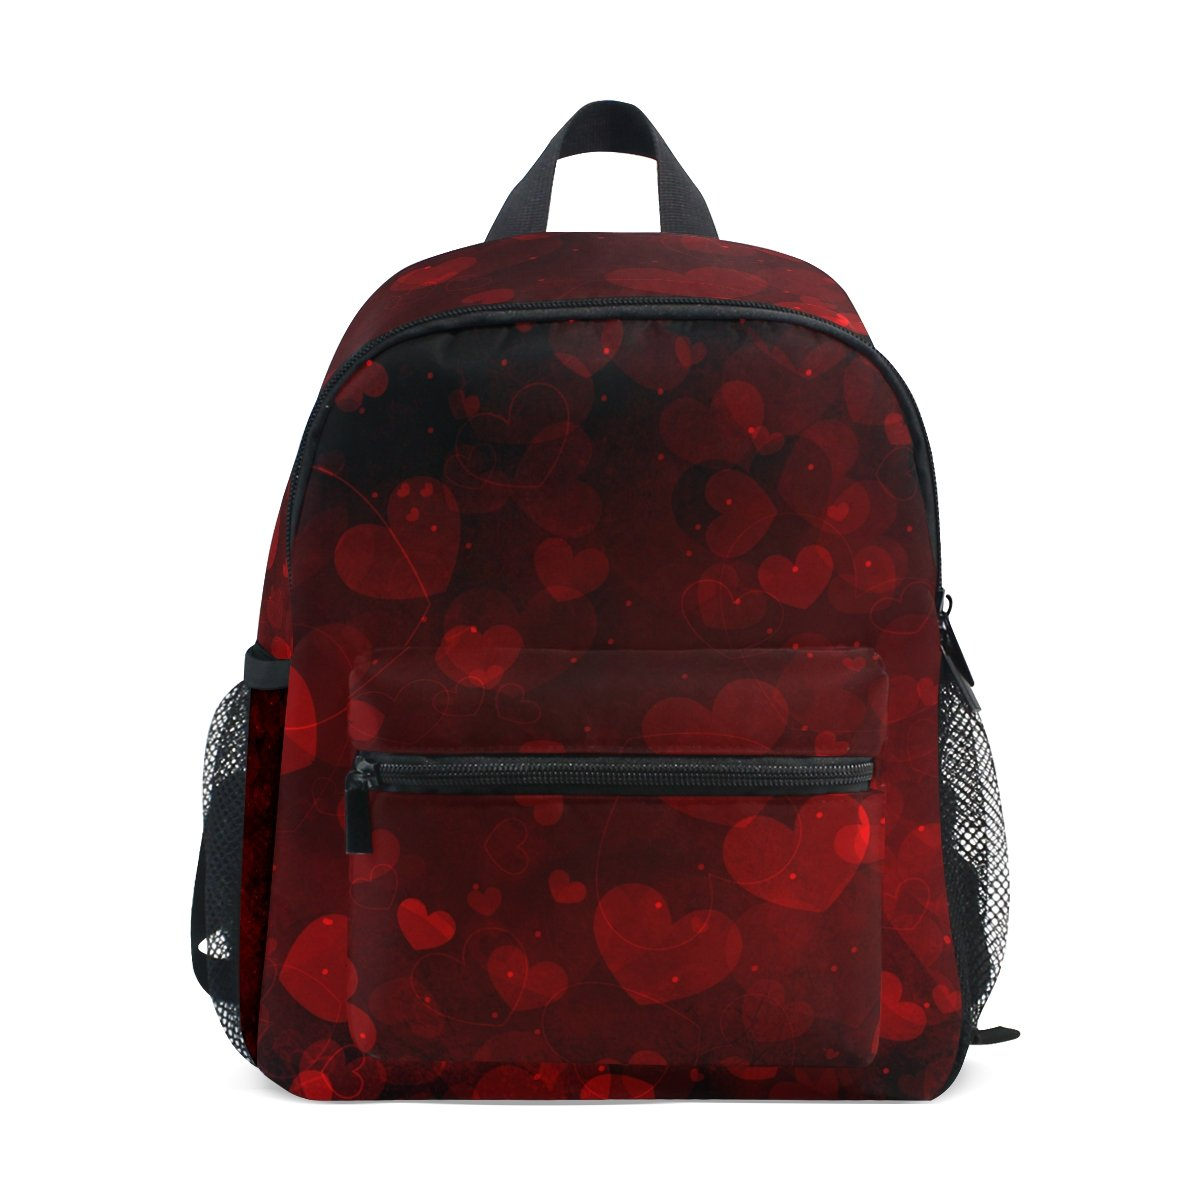 My Daily Kids Backpack Hearts Valentine's Day Wedding Nursery Bags for Preschool Children